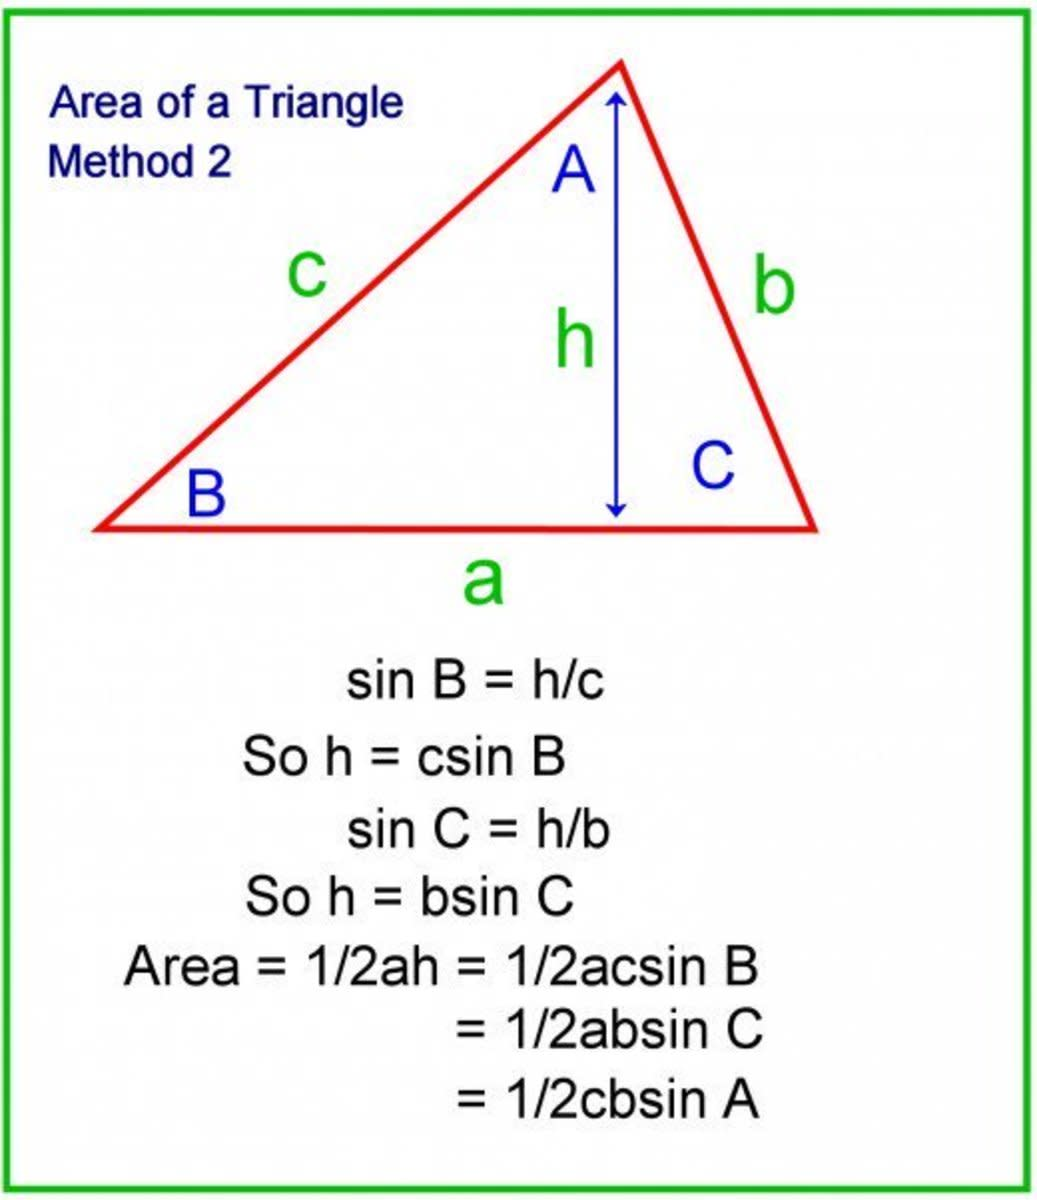 Working out the area of a triangle from the lengths of two sides and the sine of the included angle.